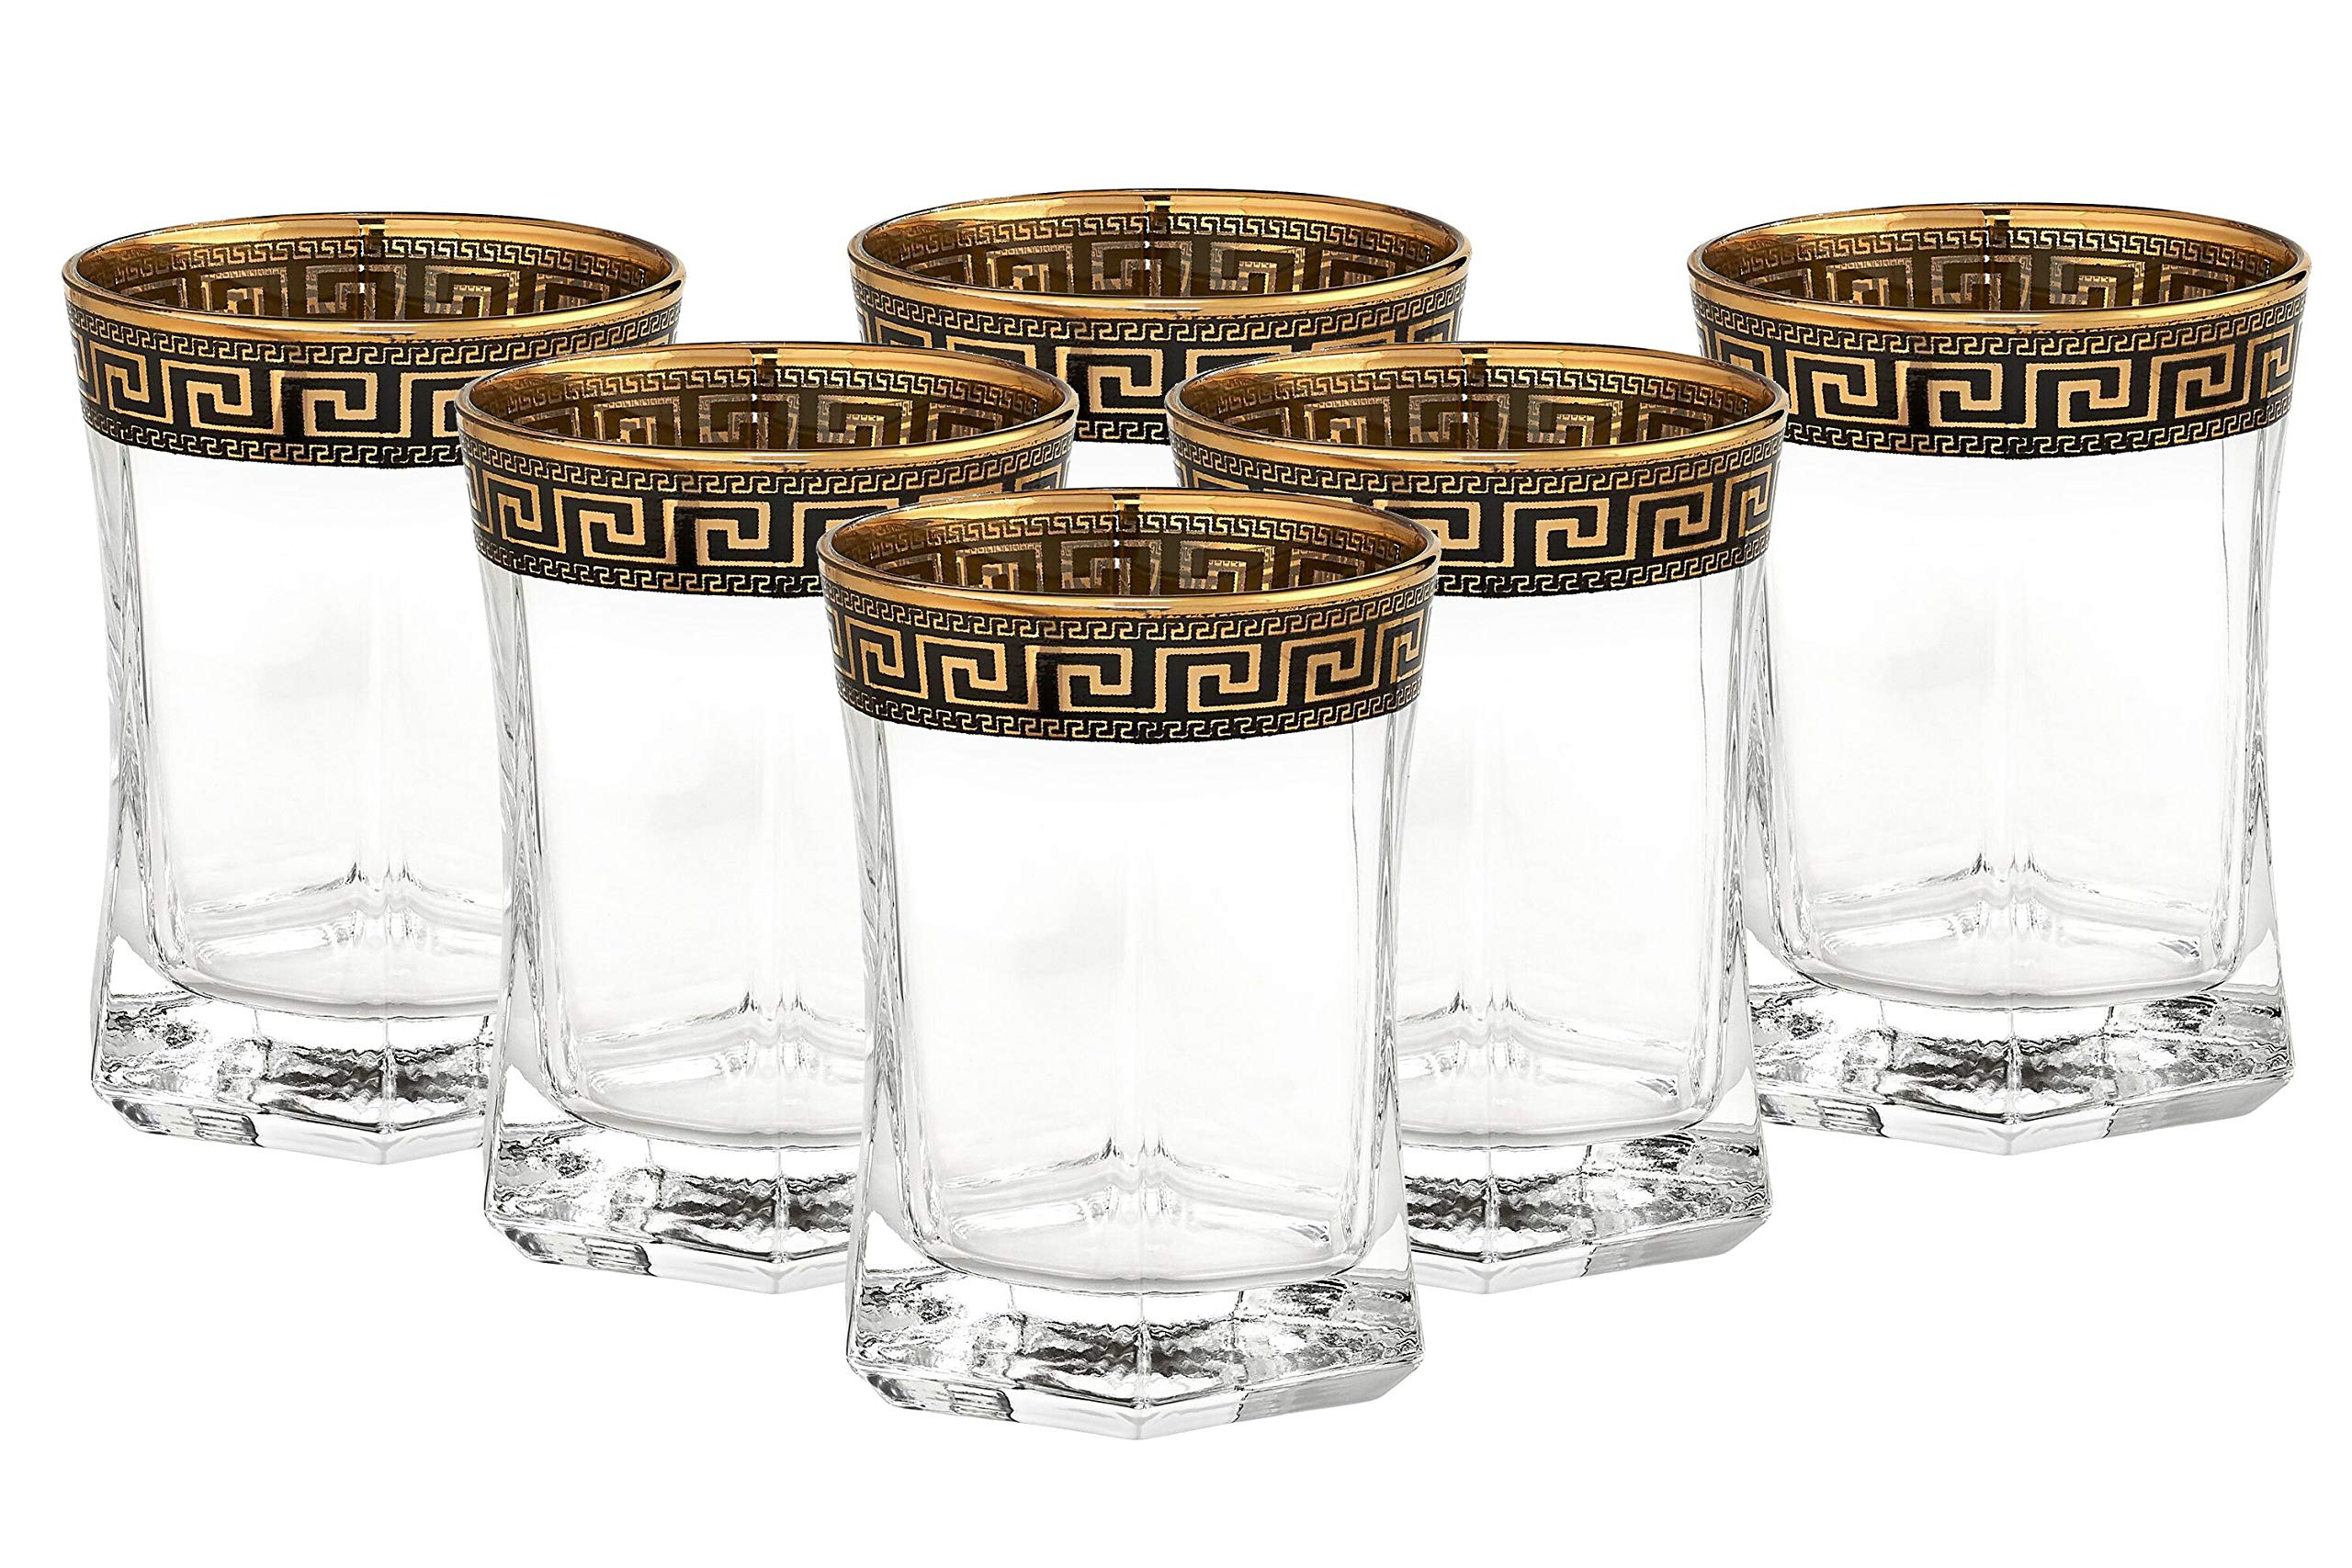 ''Cristalleria Italian Decor'' Crystal Double Old-Fashioned Whisky Rocks Glasses, 10 oz. Gold and Black Greek Key Ornament, Hand Made in Italy, SET OF 6